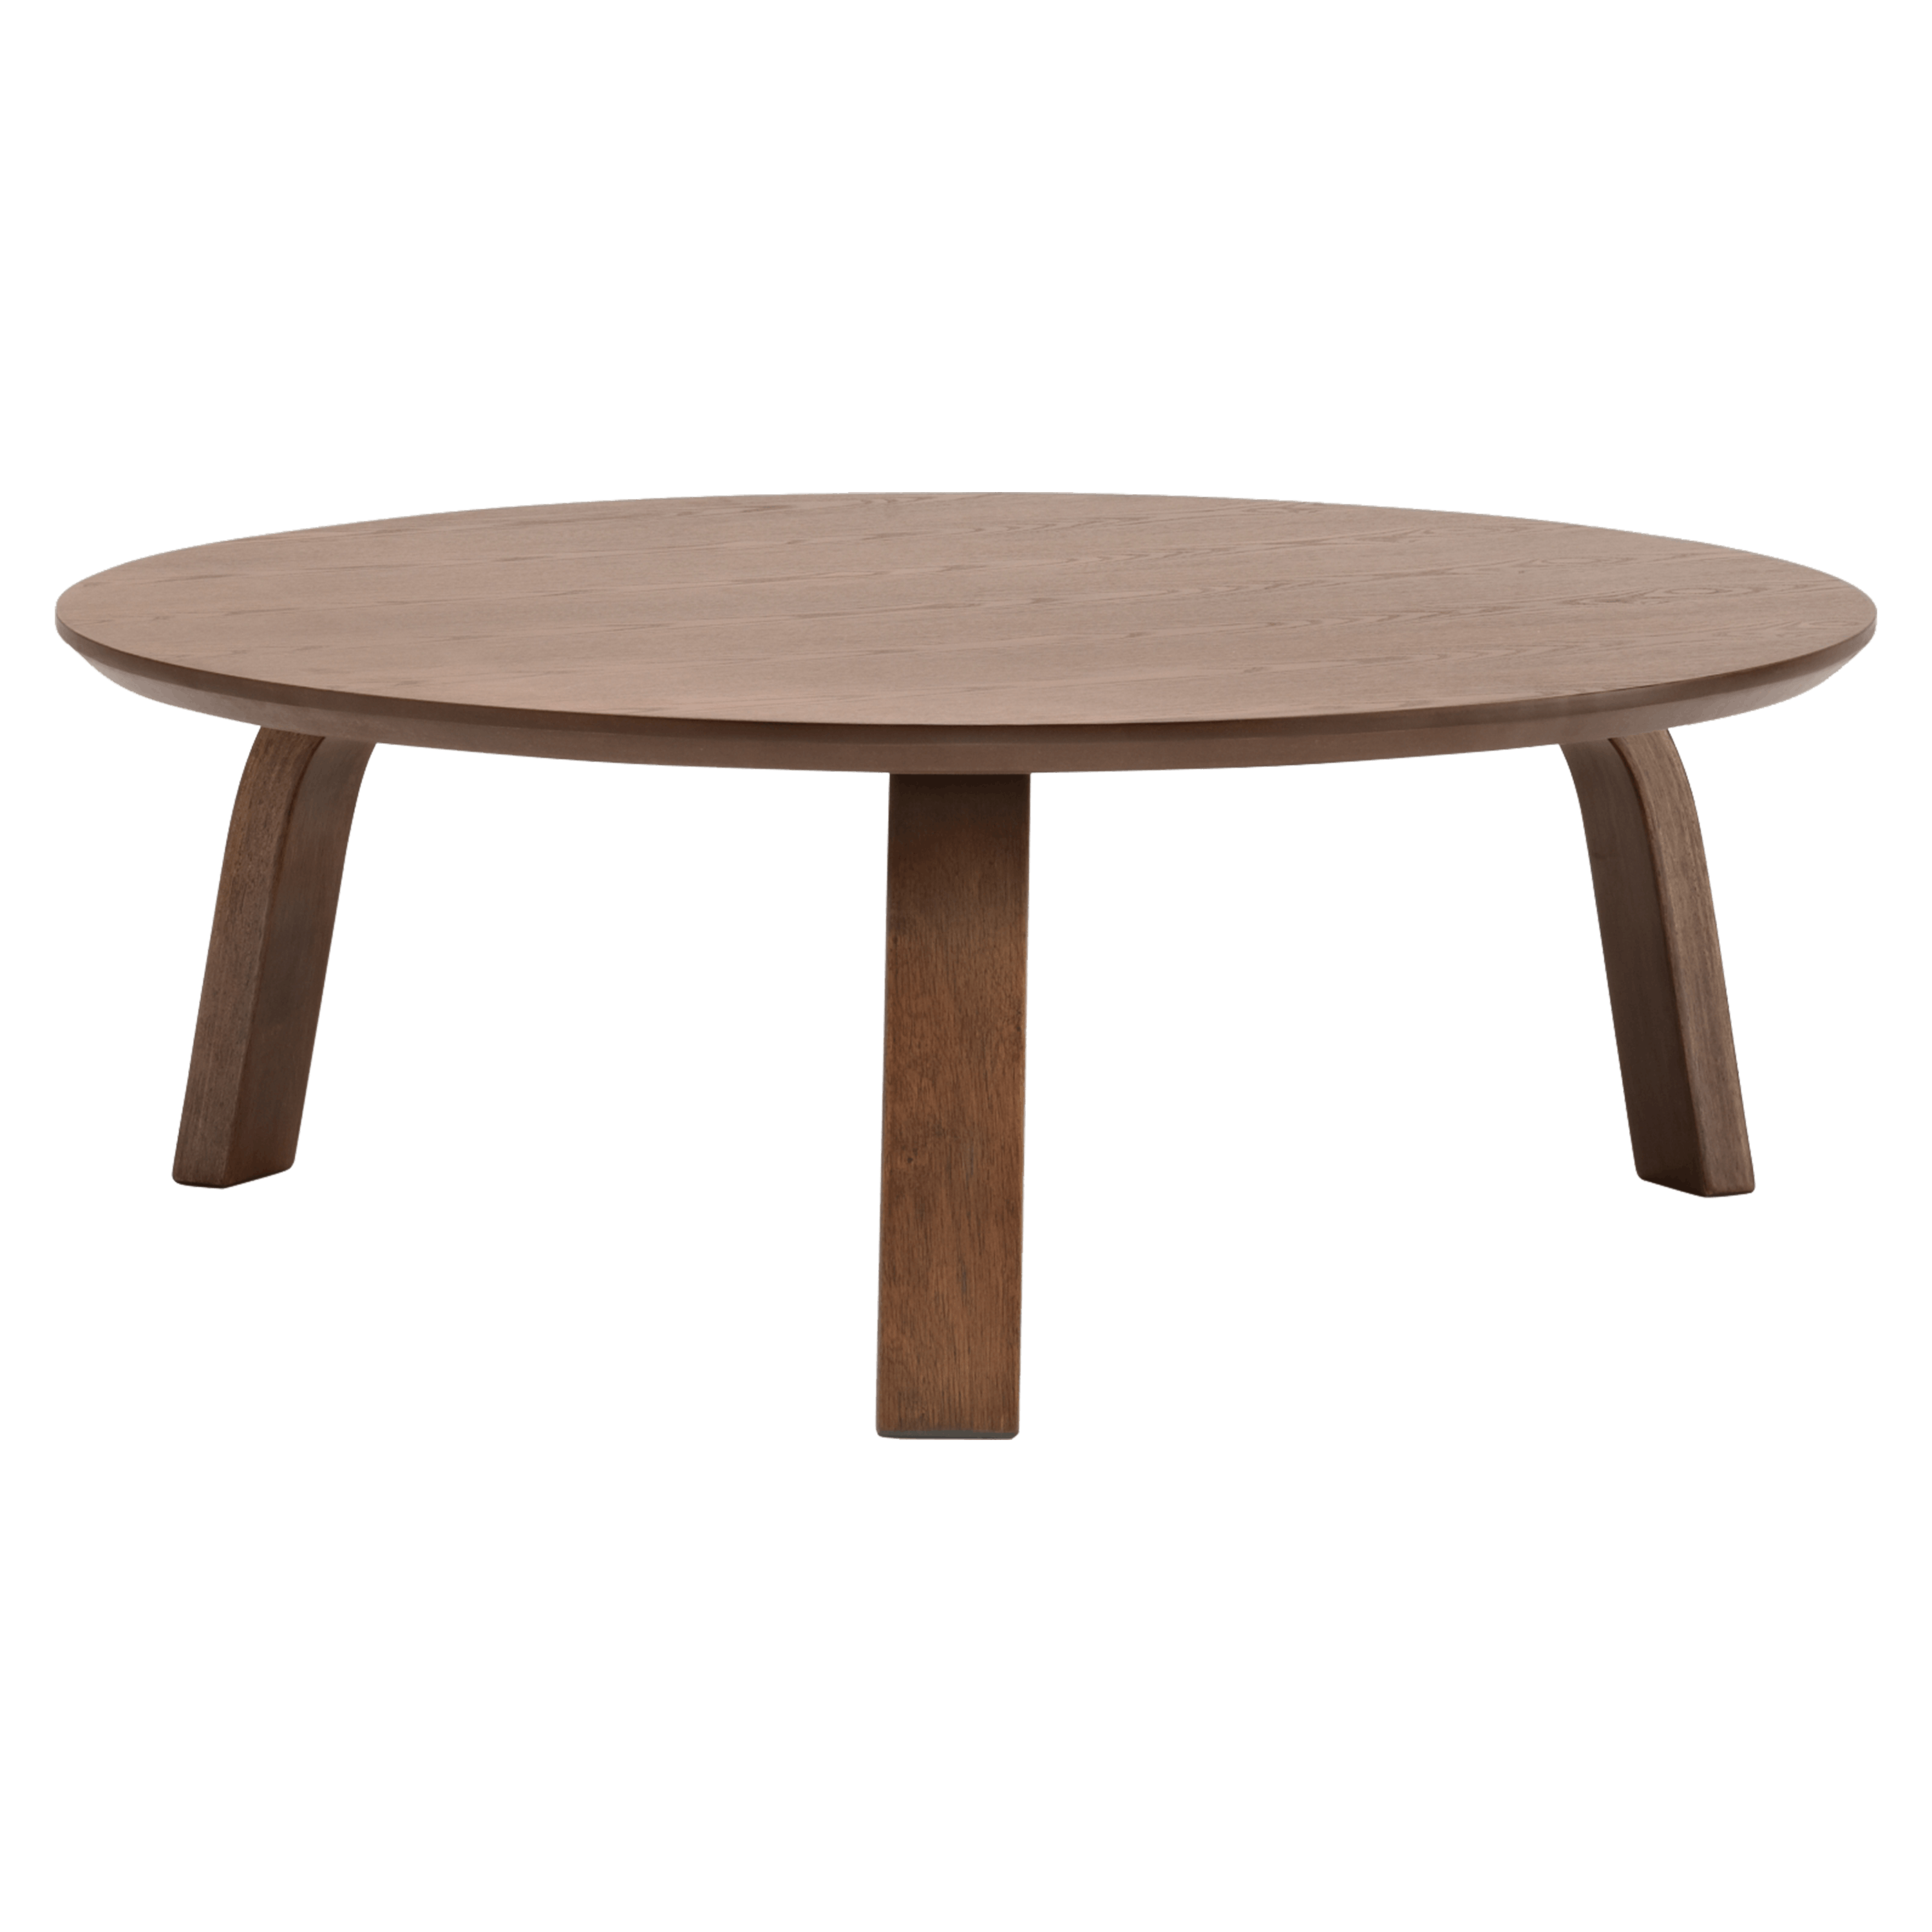 Over 60 000 Customers Trust Hipvan Shop Nes Round Coffee Table Cocoa 12417 At Hipvan In Singapore Round Coffee Table Coffee Table Coffee Tables For Sale